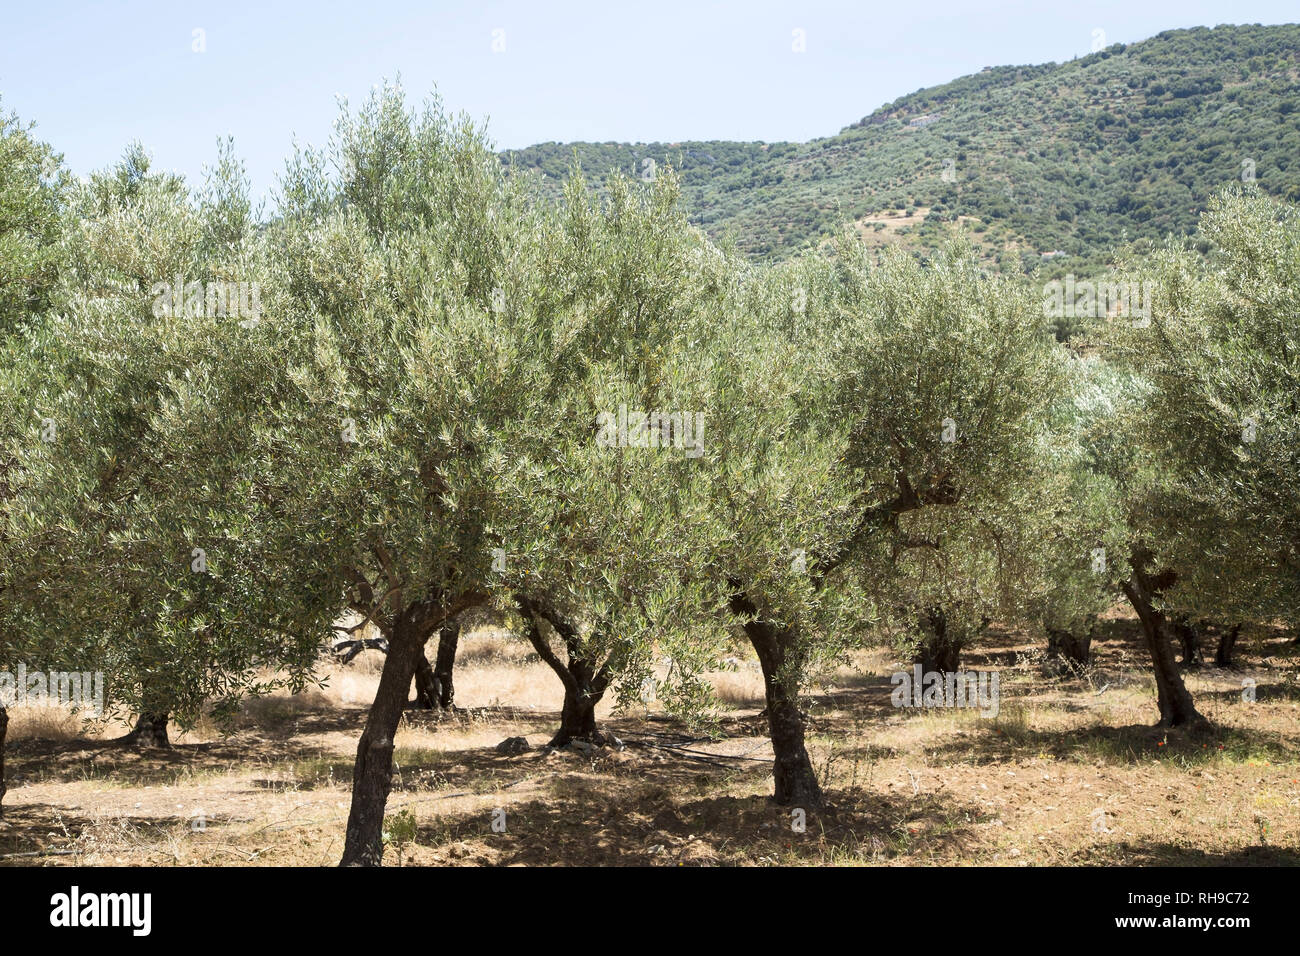 Plantation of olive trees - Stock Image